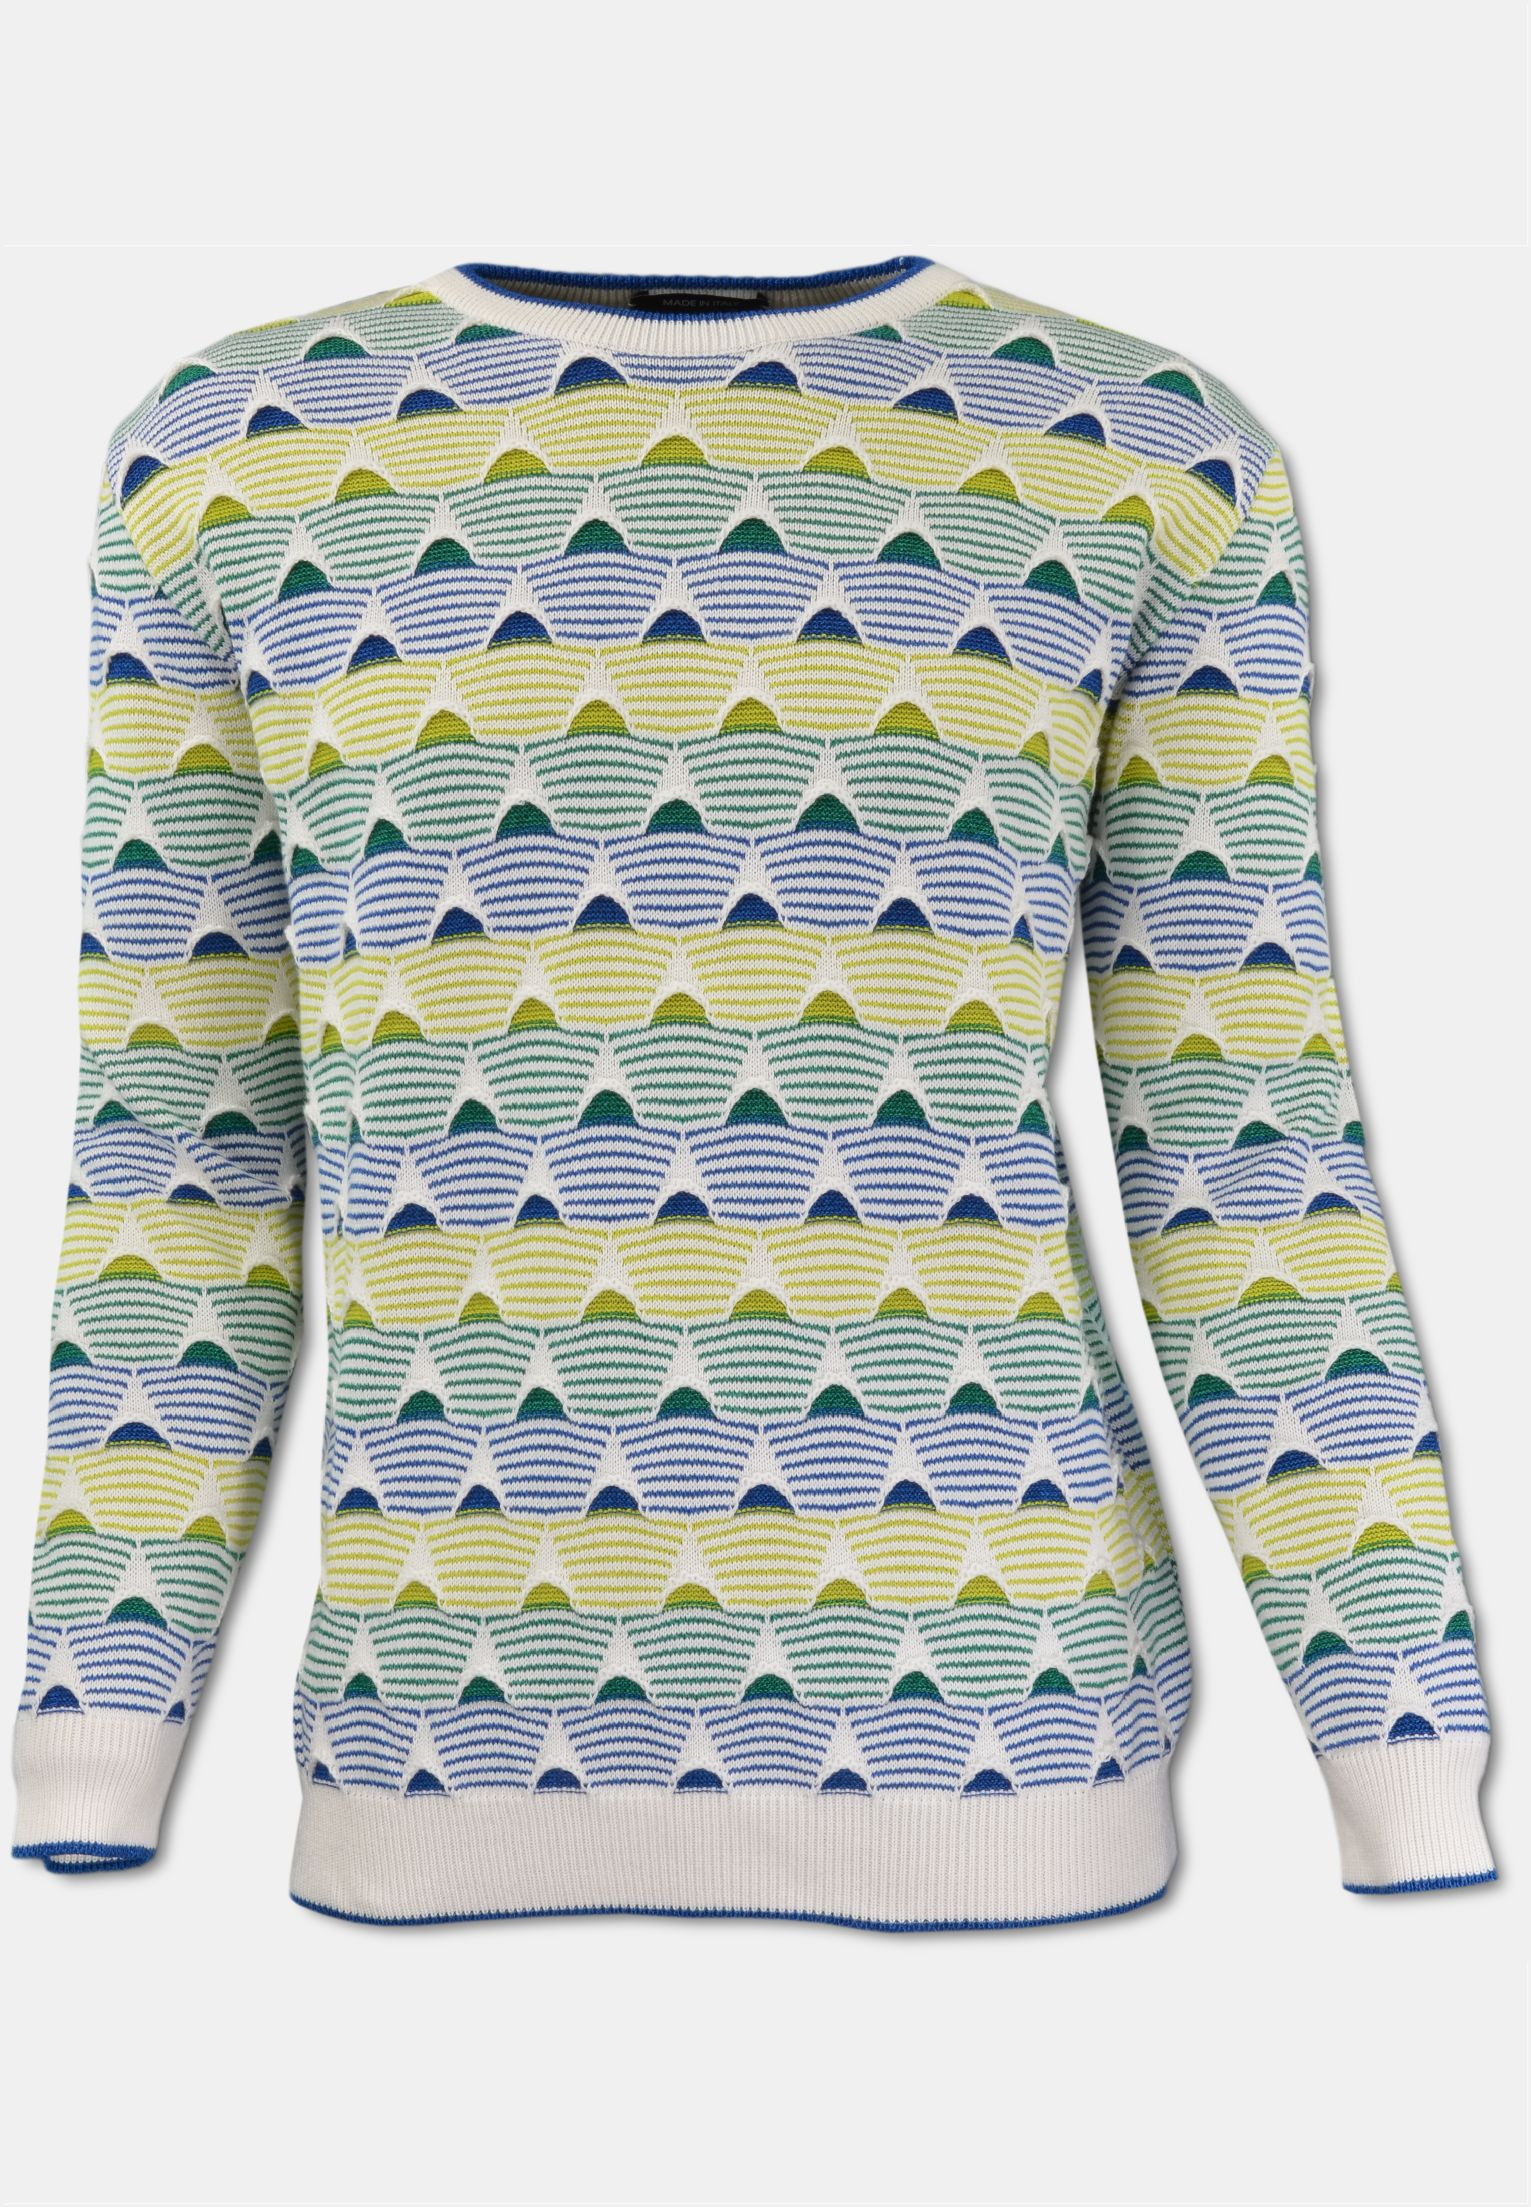 CARLO COLUCCI Online Shop | Sweater with filigree pattern, white royal L | purchase online